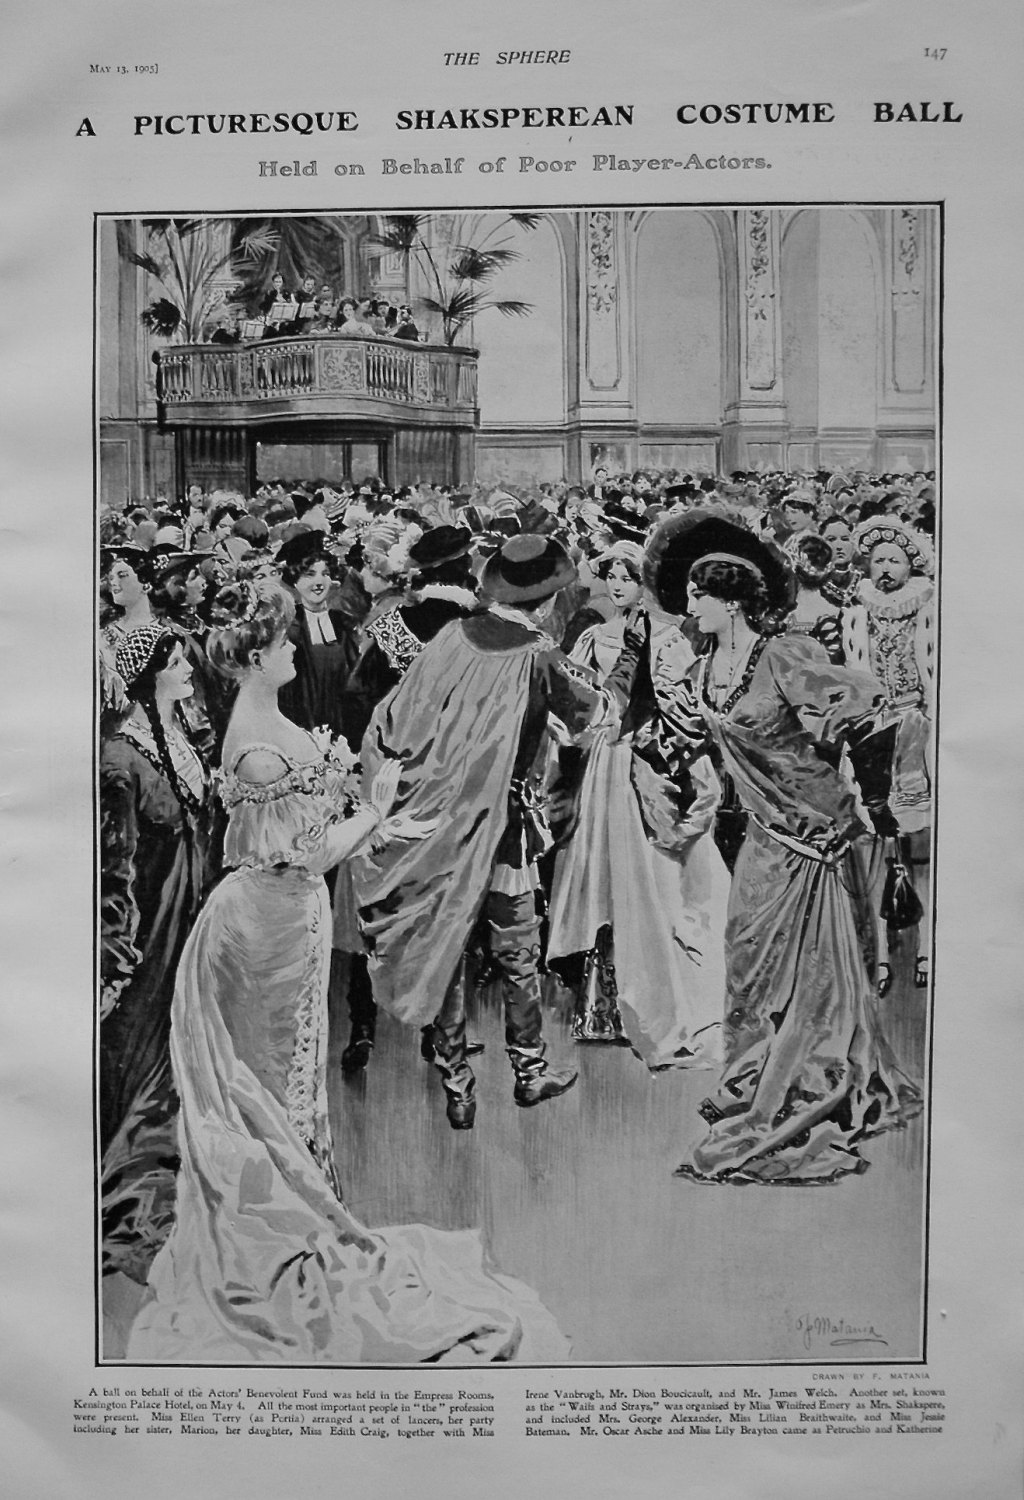 A Picturesque Shaksperean Costume Ball. 1905